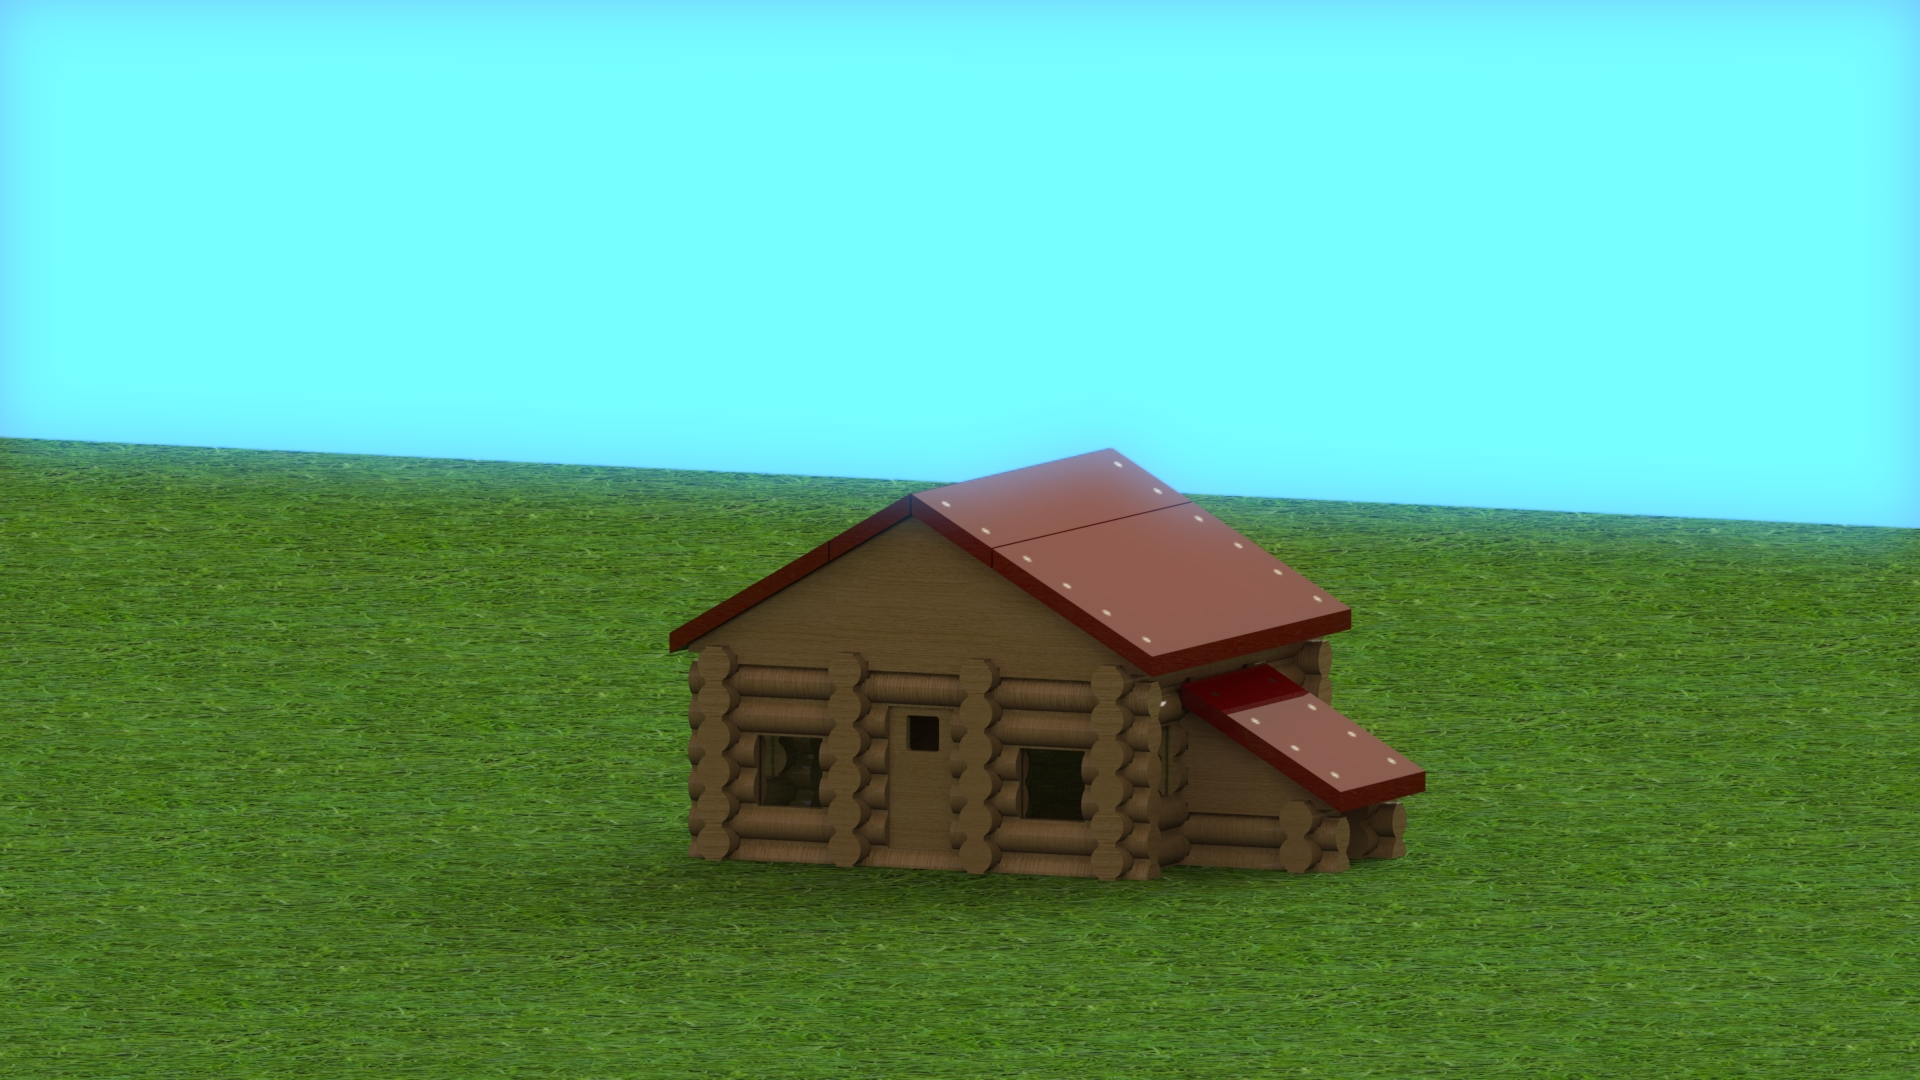 Creating a Log Cabin in SolidWorks – Part 1: SolidWorks Settings